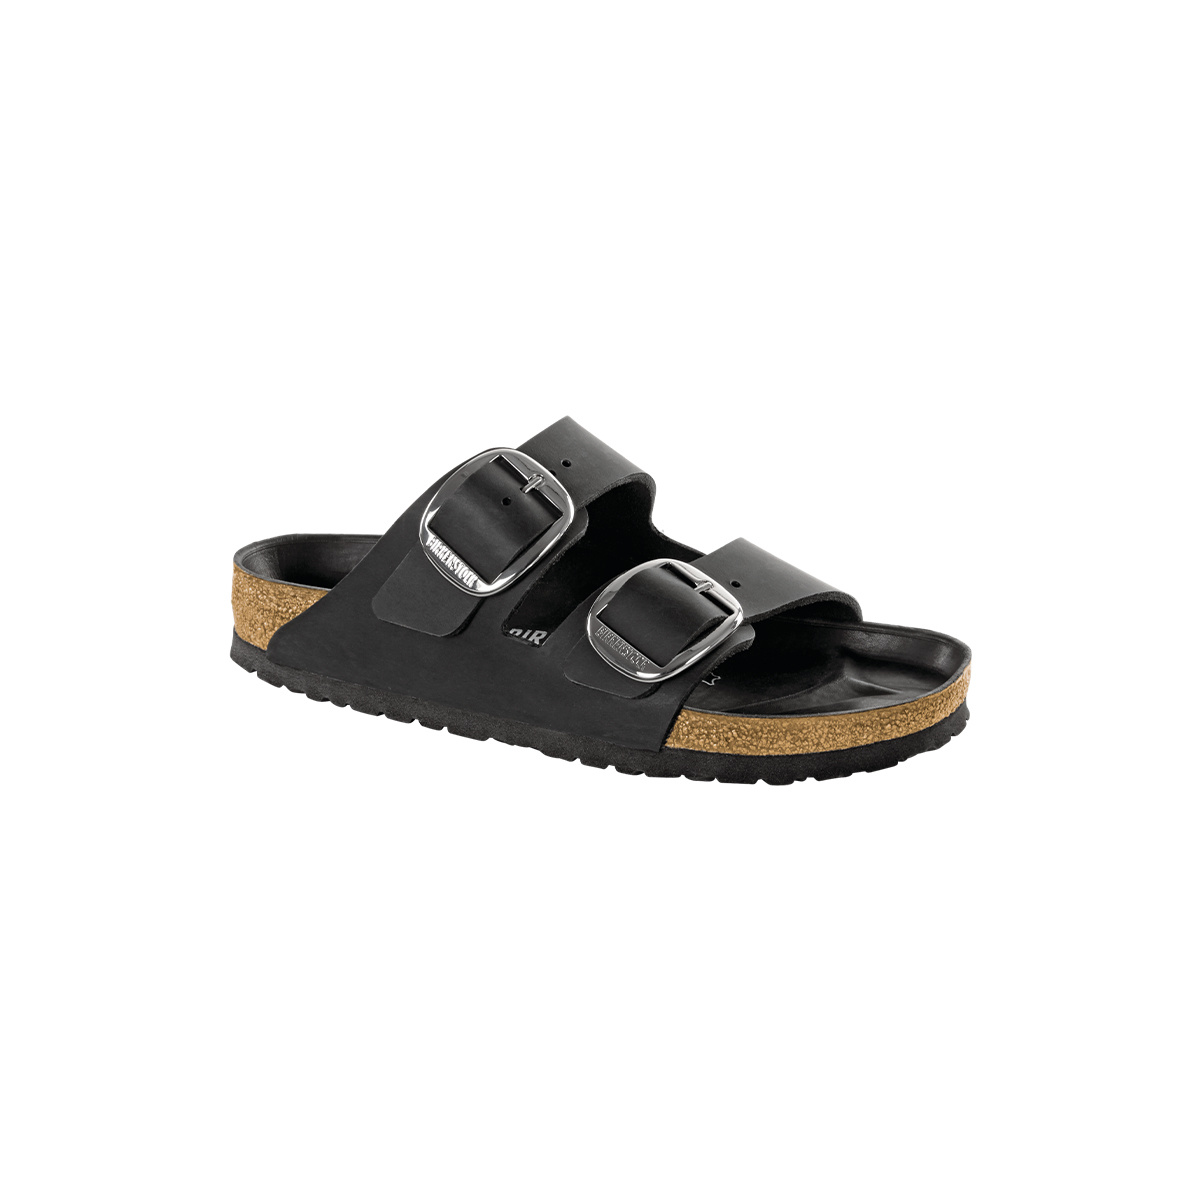 Birkenstock Arizona Big Buckle Leather -Narrow